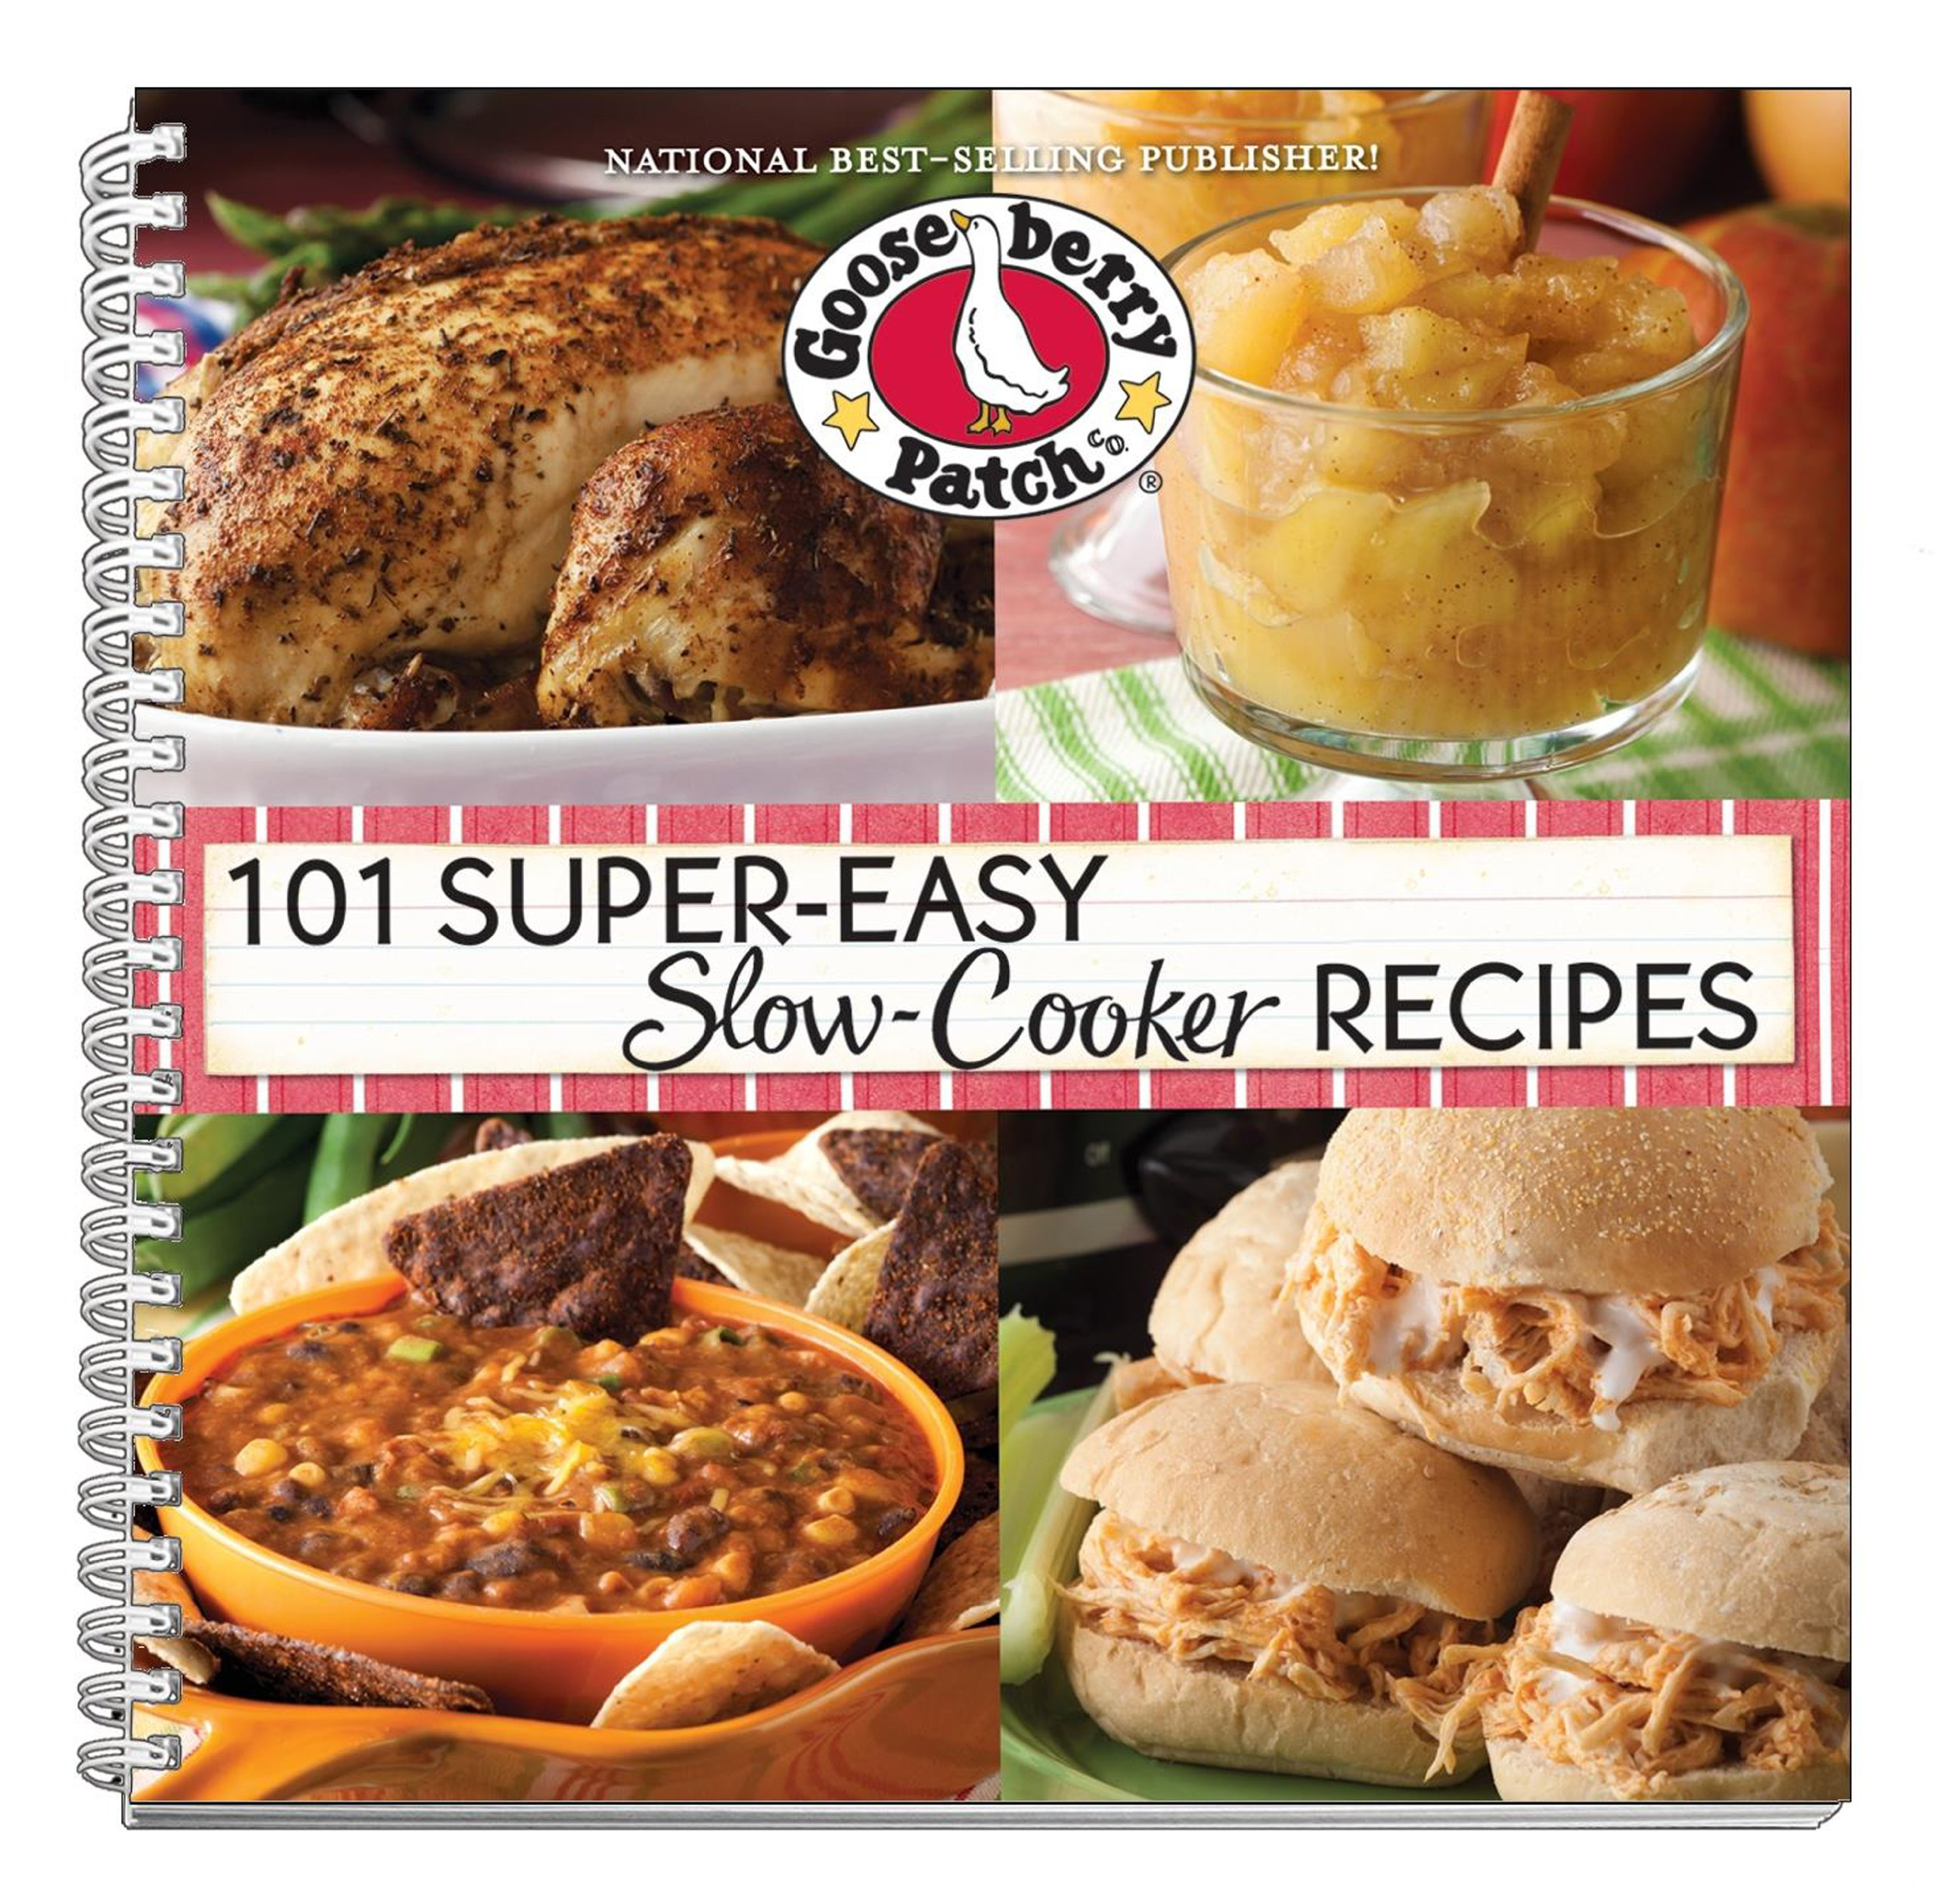 101 super easy slow cooker recipes cookbook 101 cookbook collection 101 super easy slow cooker recipes cookbook 101 cookbook collection gooseberry patch 9781620930908 amazon books forumfinder Image collections